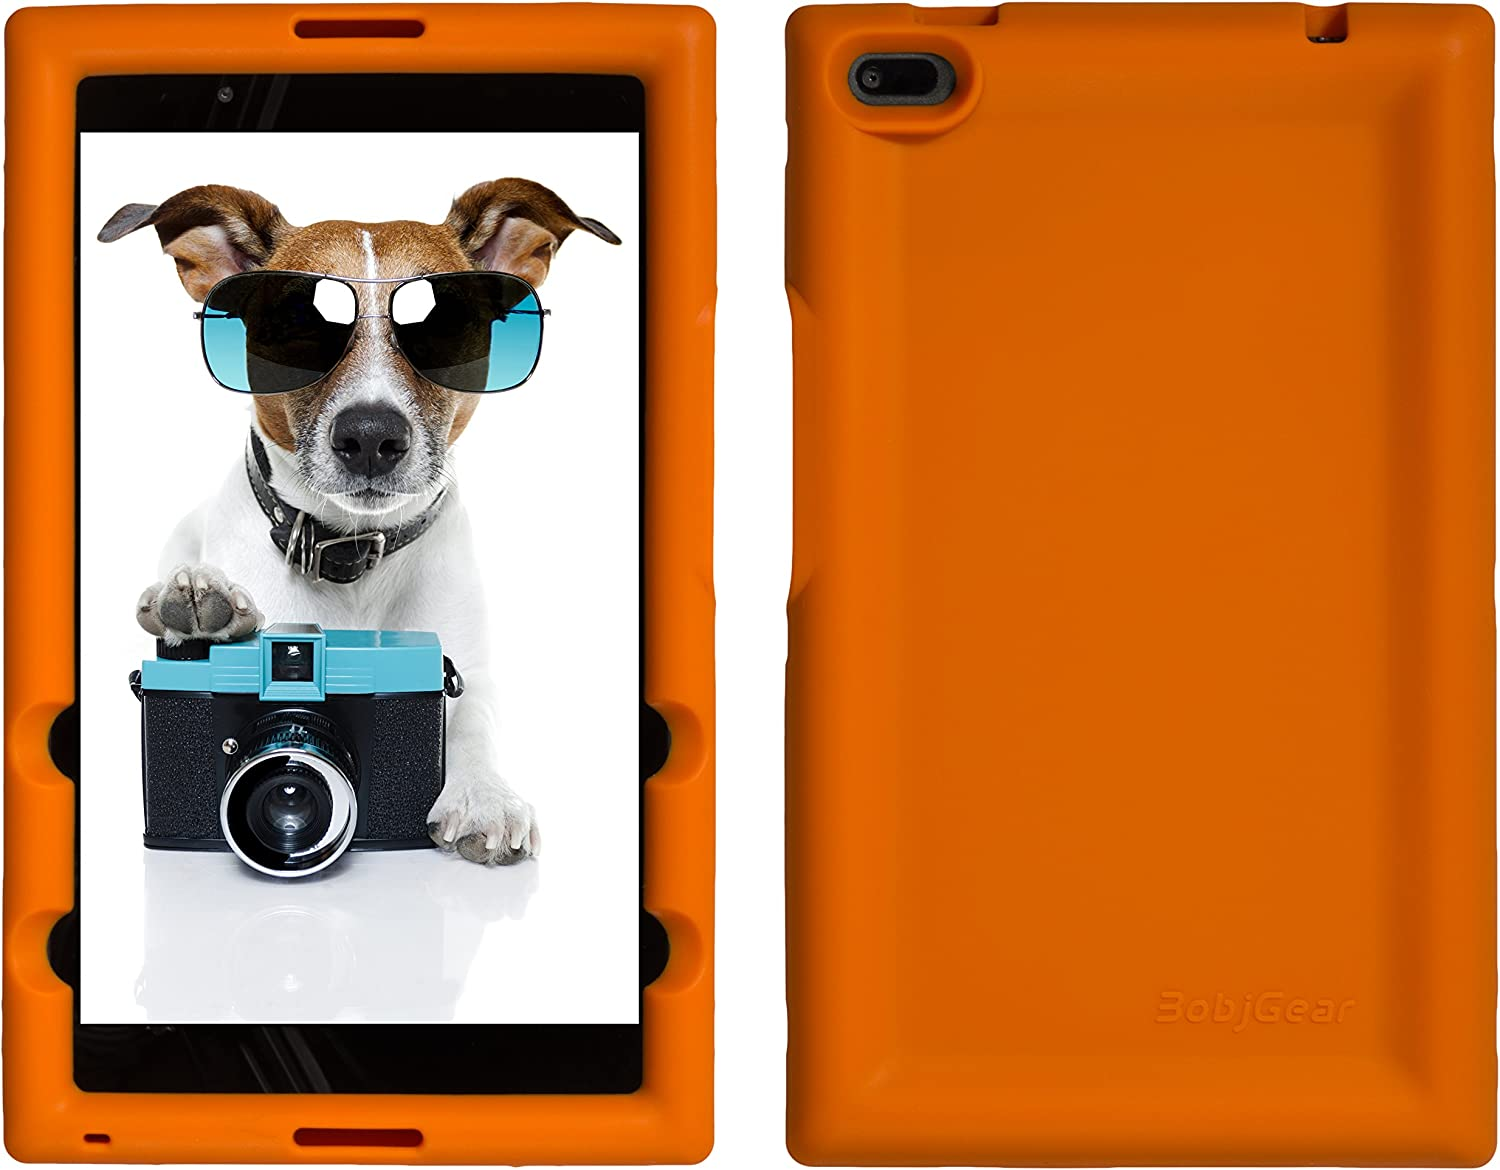 Bobj Rugged Case for Lenovo Tab 4 8 inch only TB-8504F or TB-8504X (NOT for TB-8304F or Plus Model TB-8704) - BobjGear Custom Fit - Patented Venting - BobjBounces Kid Friendly (Outrageous Orange)